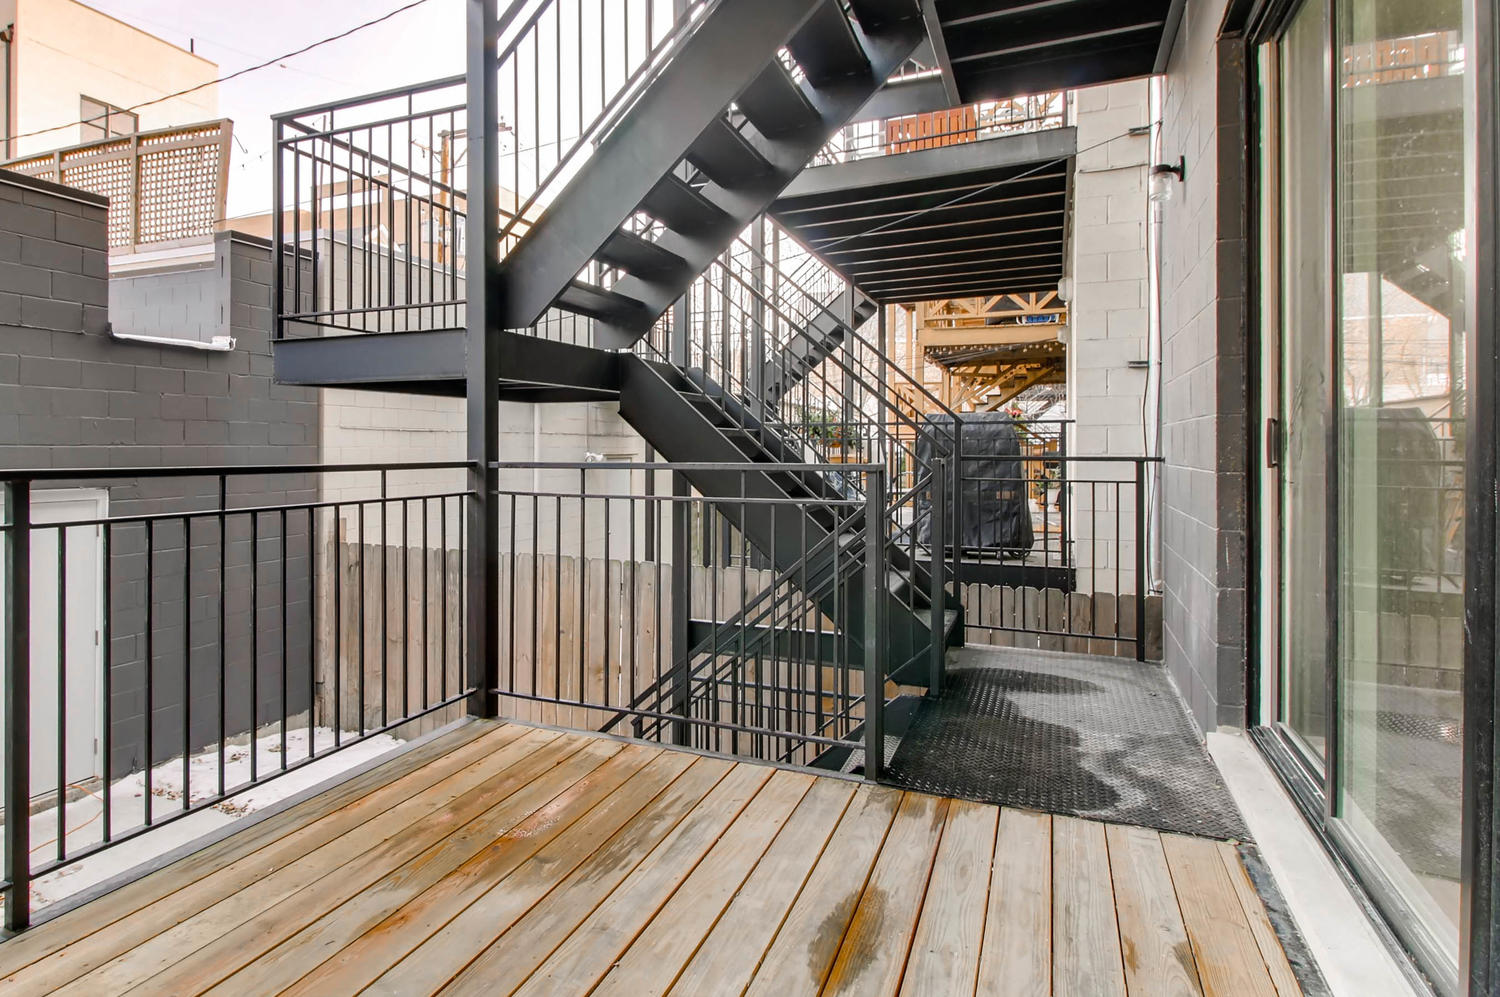 Deck or balcony at 877 N Marshfield Ave Unit 1, Chicago, IL